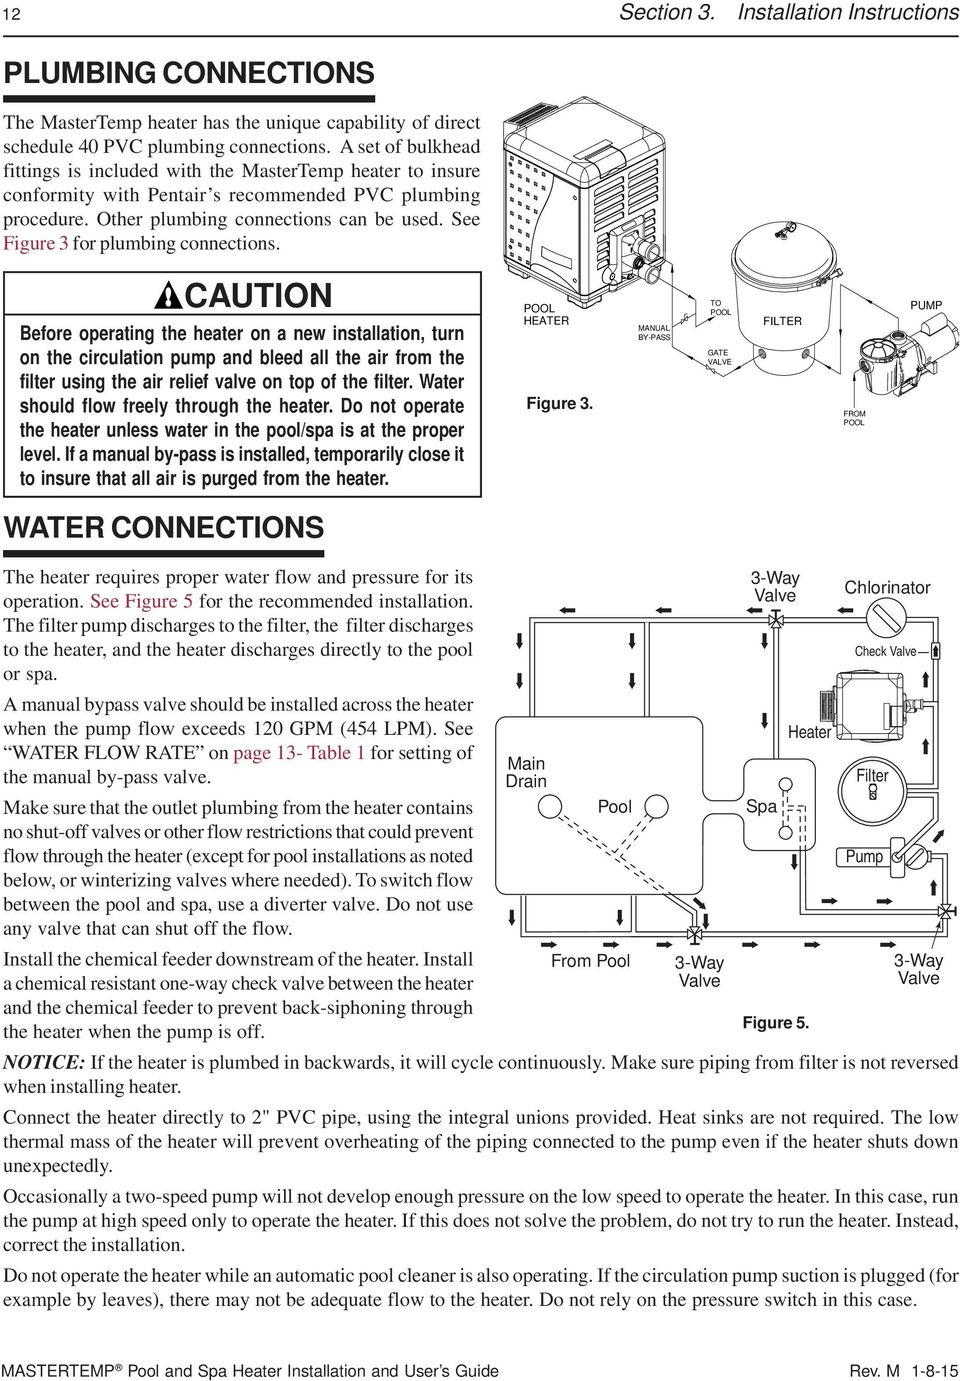 Mastertemp Pool And Spa Heater Installation User S Guide Pdf Circulation Pump Wiring Diagram See Figure 3 For Plumbing Connections